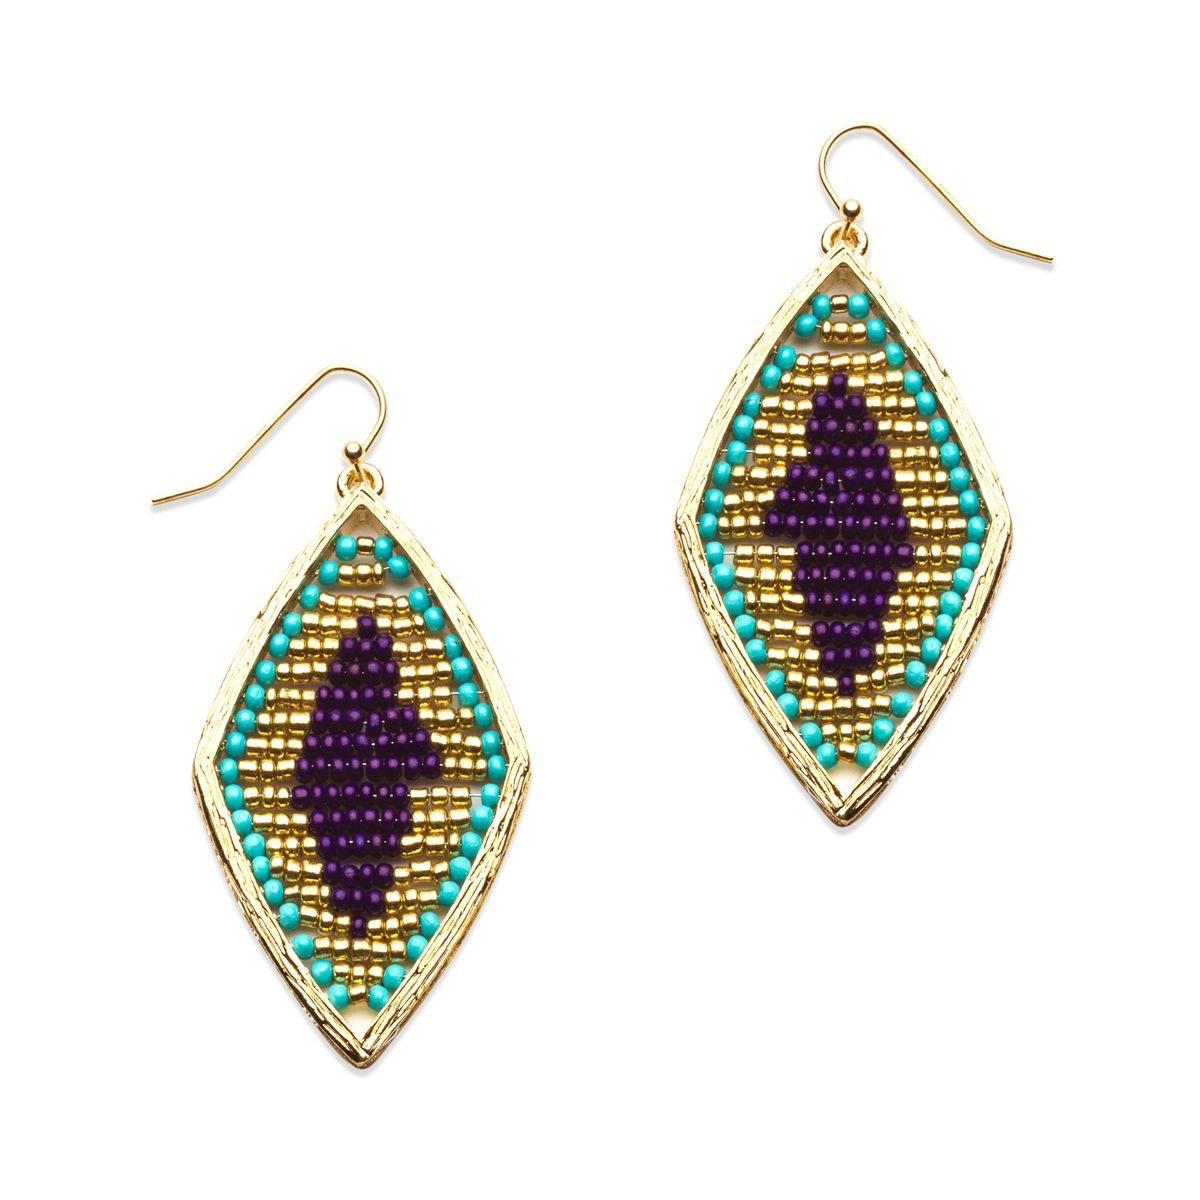 Kyra Earrings - beaded beauties featuring a stunning diamond design in bright blues and gold. $32